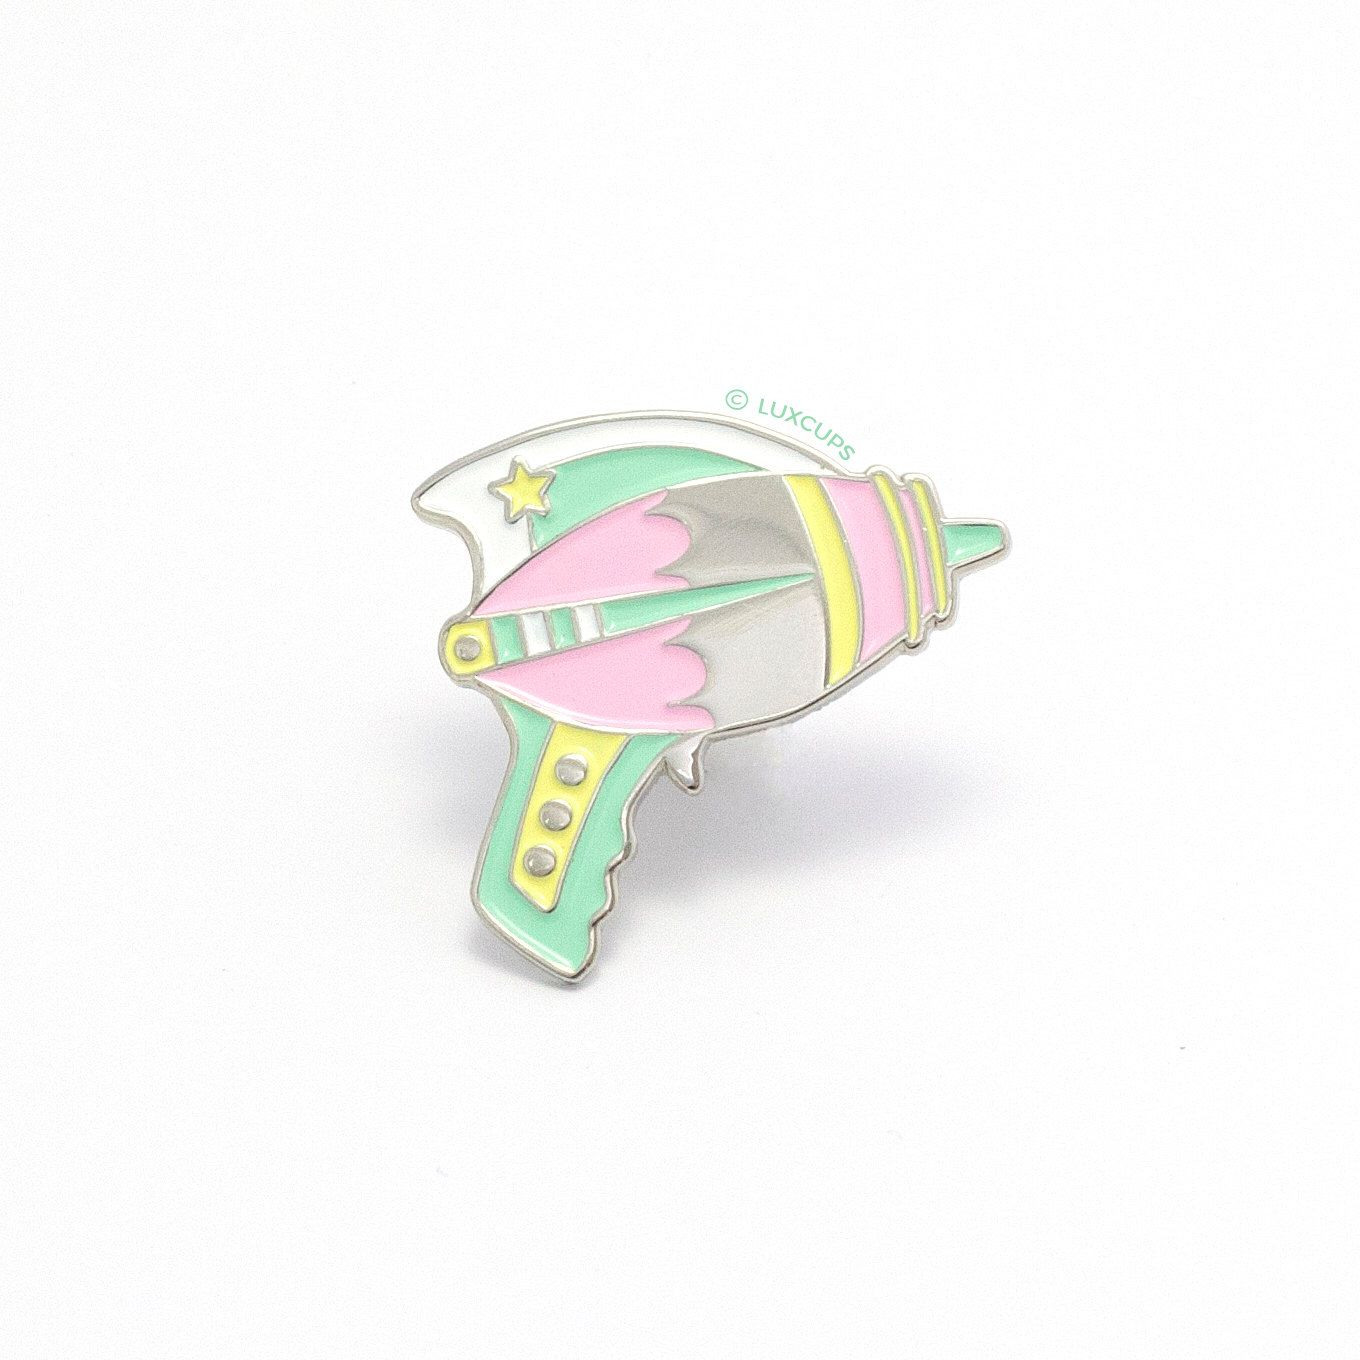 Gun by Ray Enamel LuxCups Pastel EtsyAesthetics Pin on E2YHDe9WI